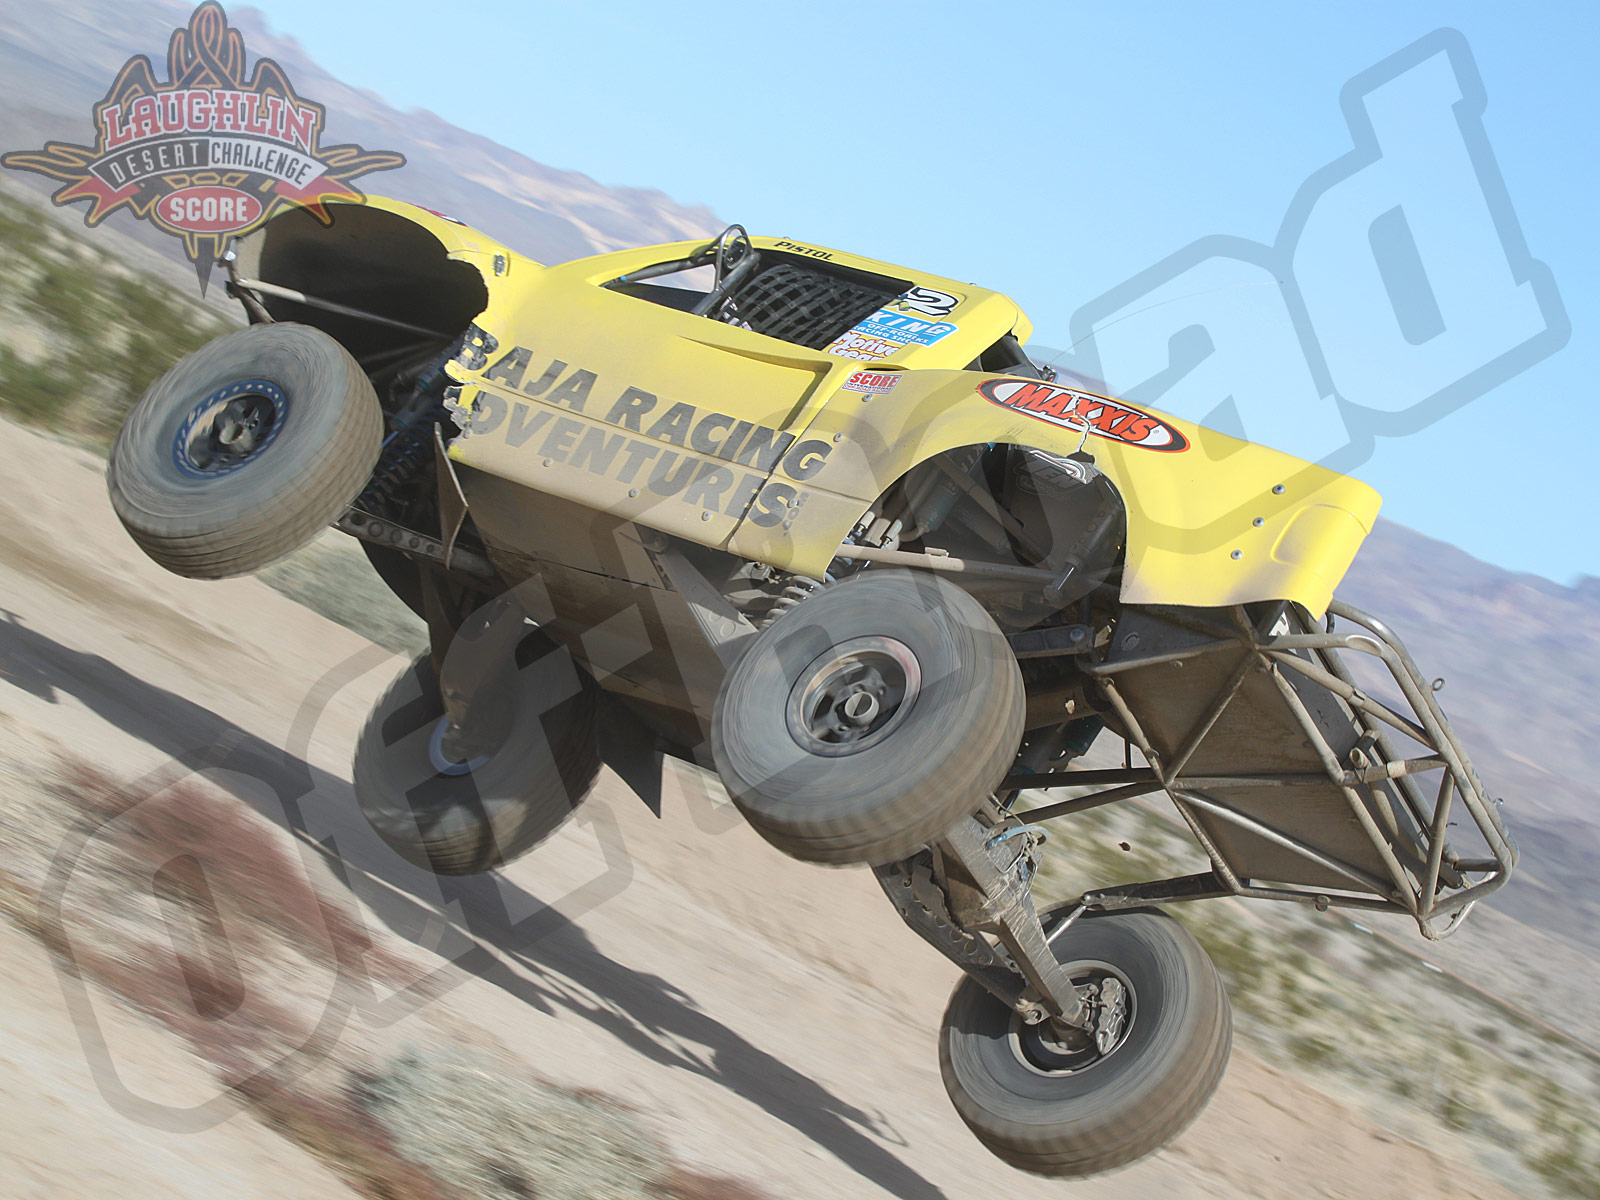 030311or 6829+2011 score laughlin desert challenge+trophy trucks sunday